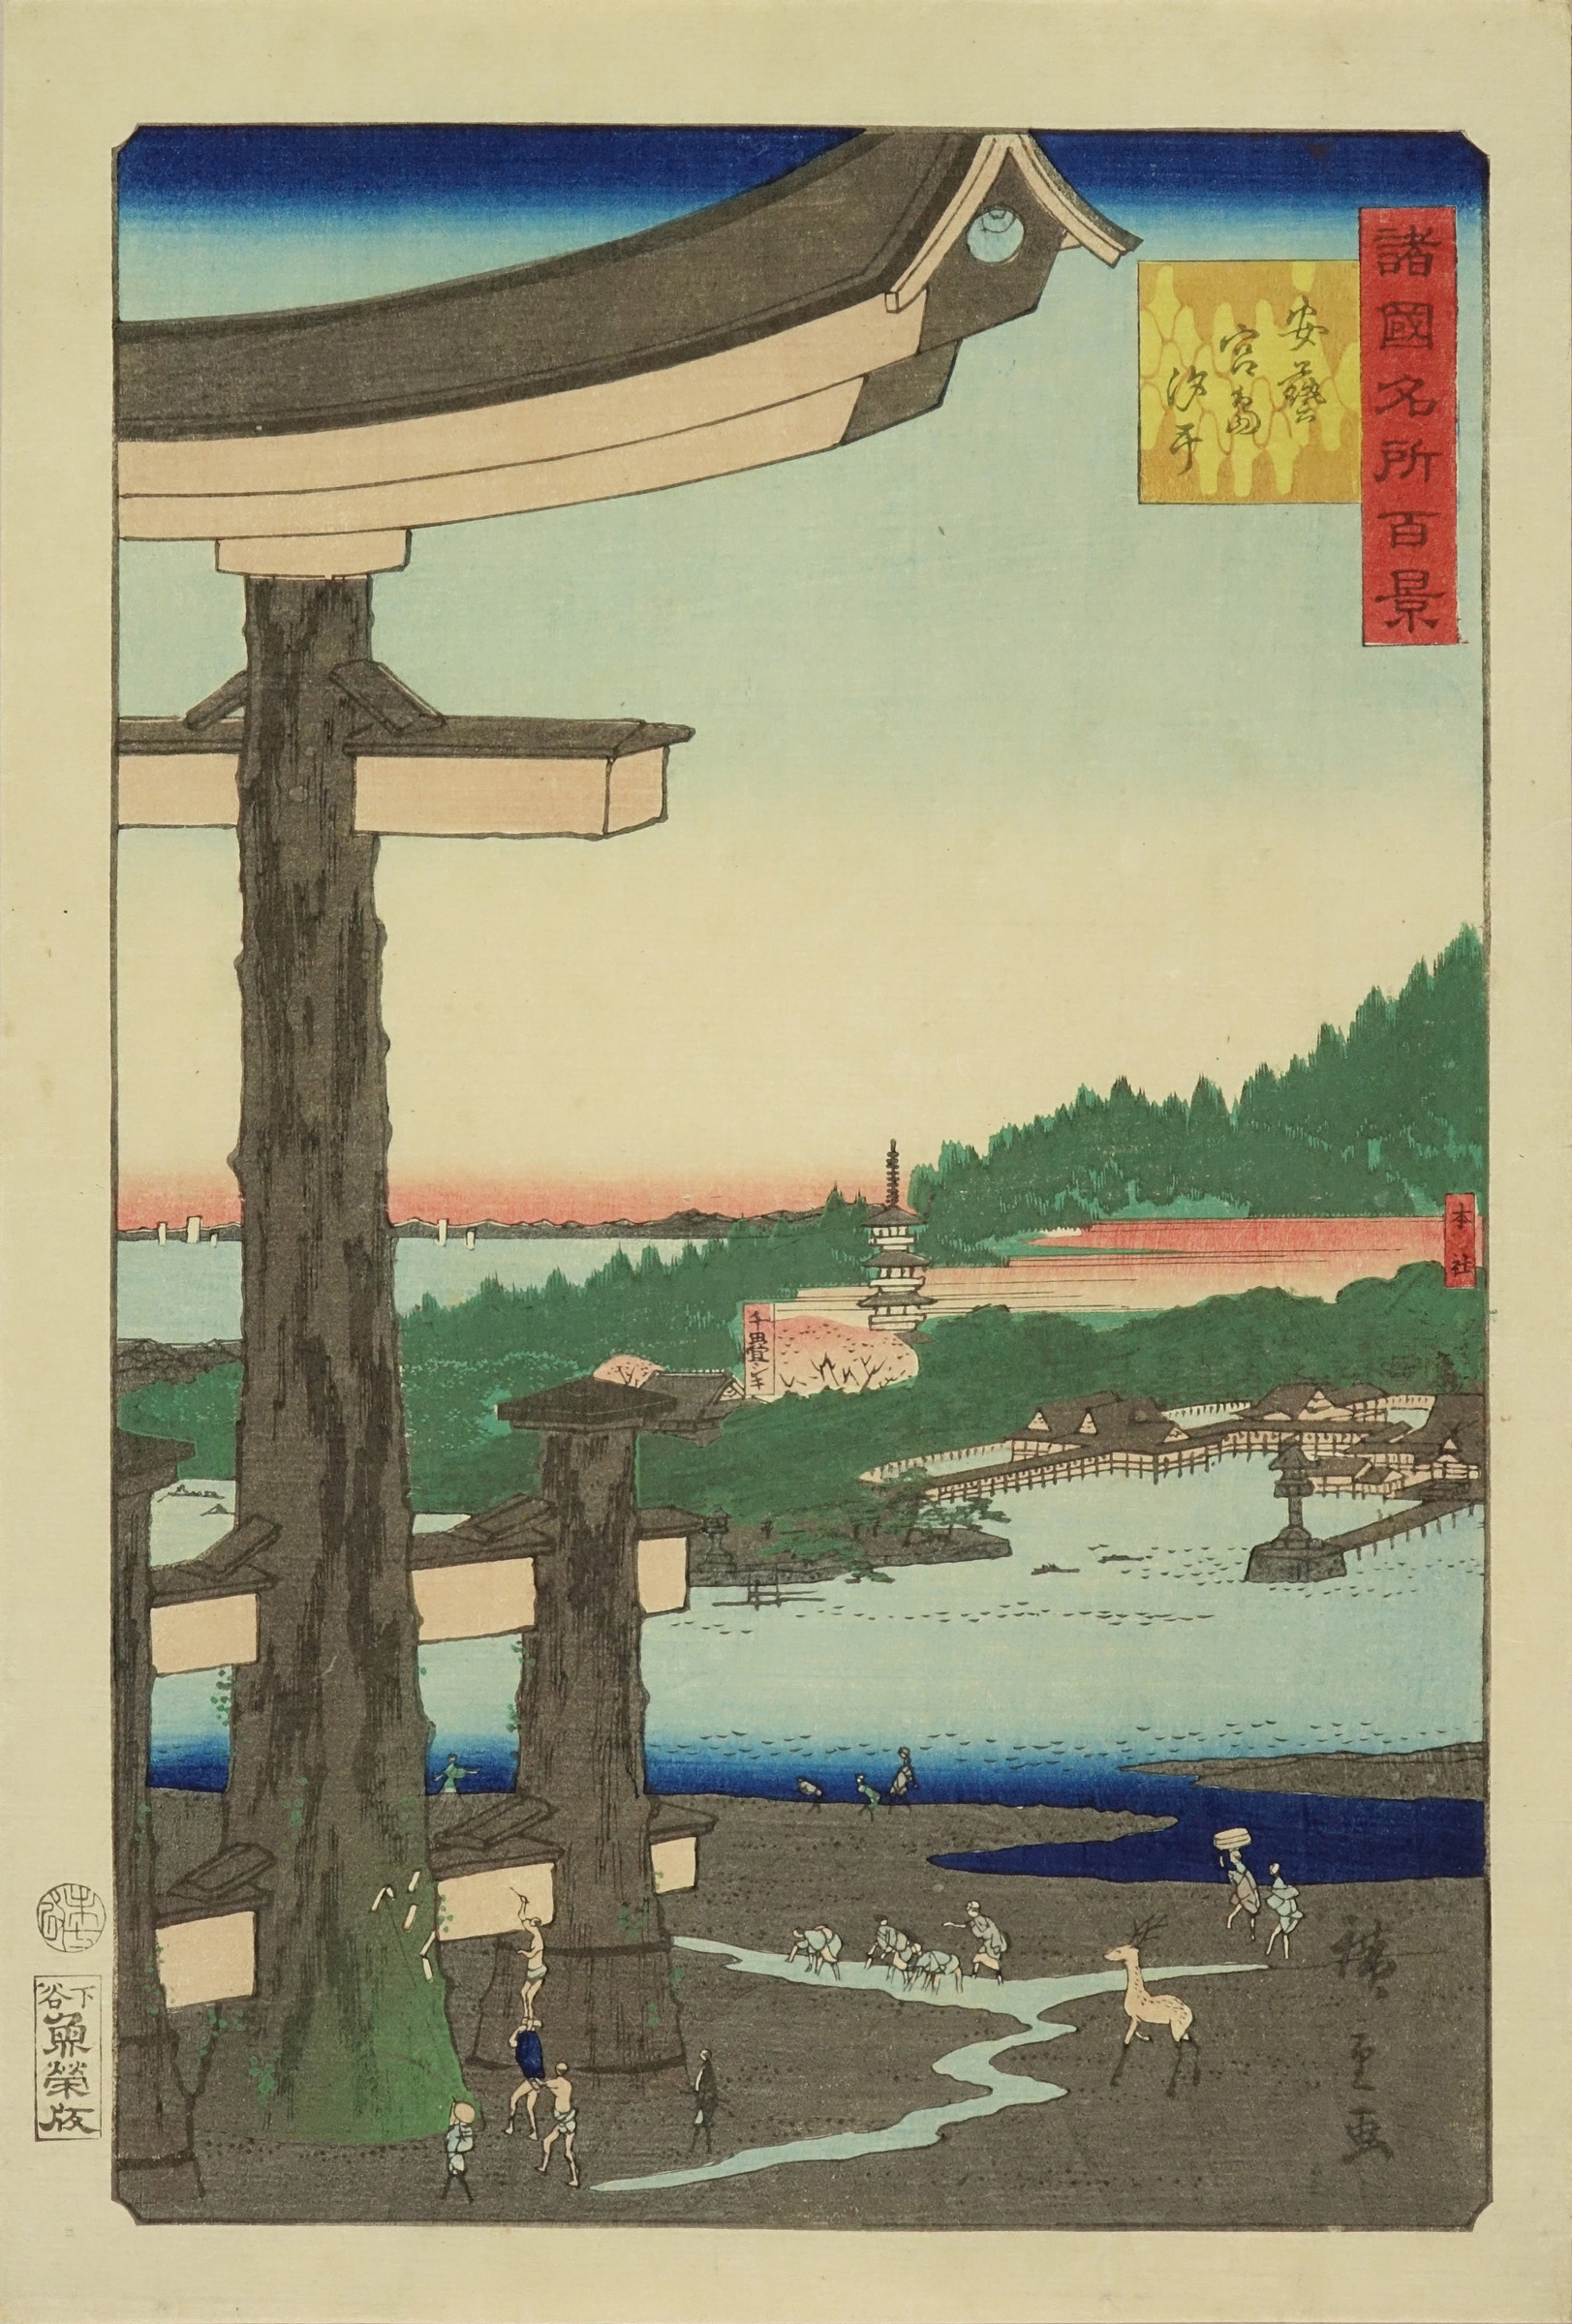 HIROSHIGE II <i>Aki Miyajima shiohi</i> (Tideland at Miyajima, Aki Province), from <i>Shokoku meisho hyakkei</i> (One hundred views of famous places of provinces)